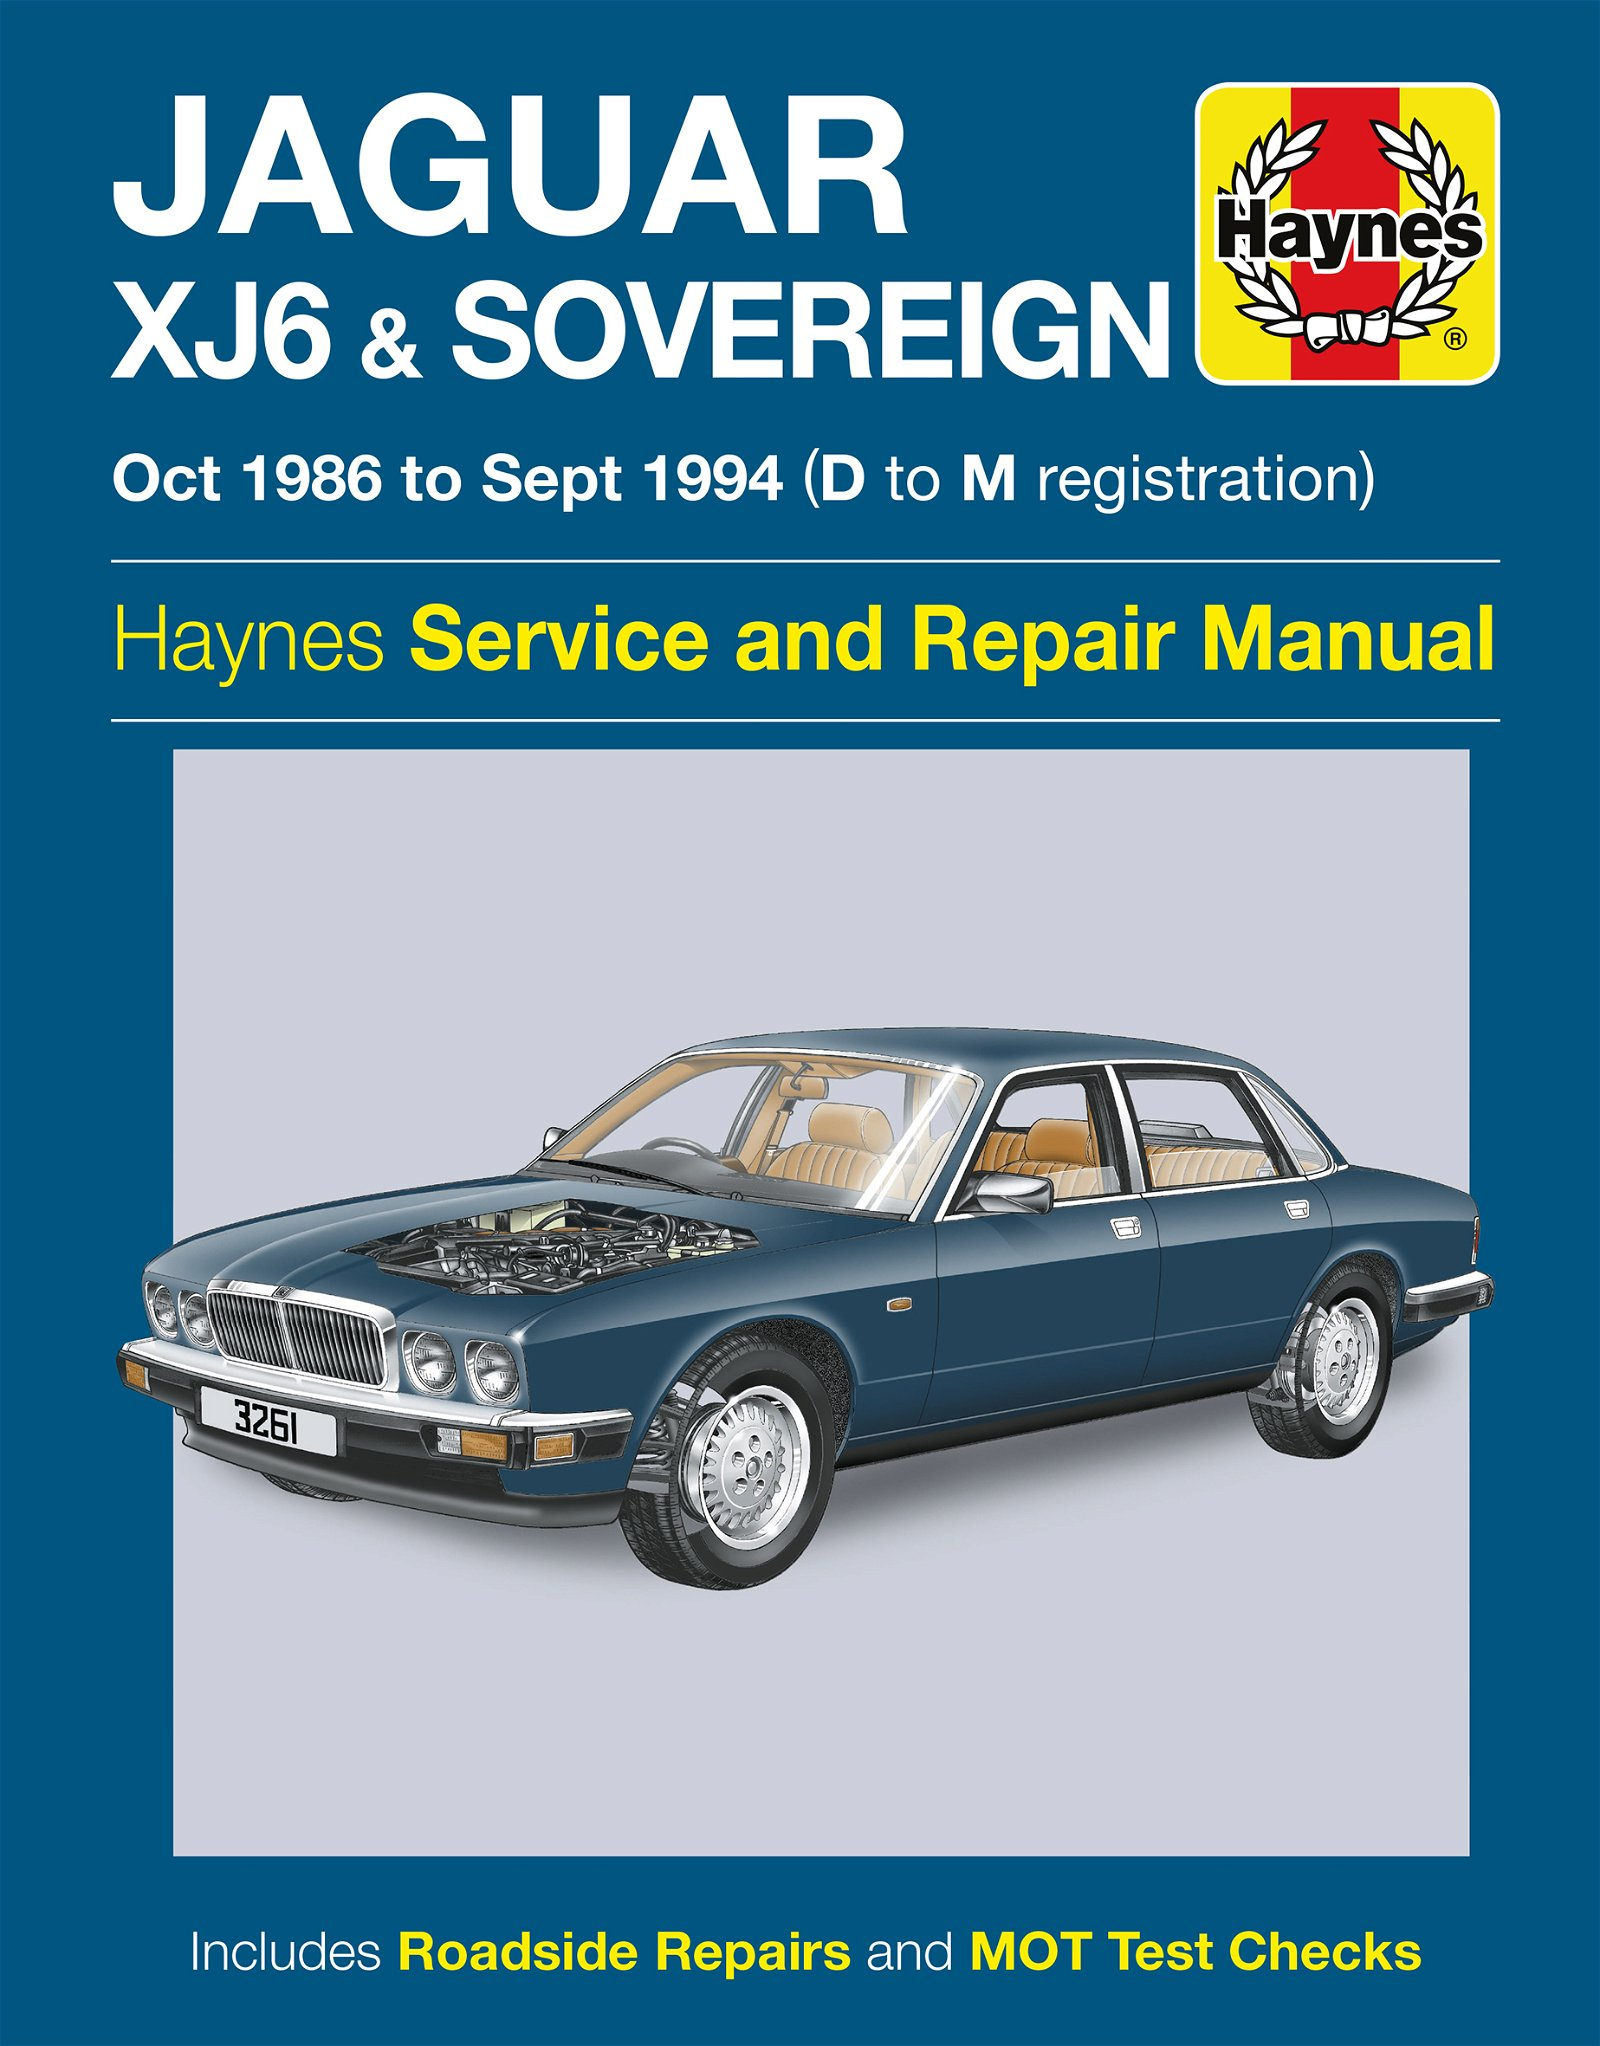 [Manuel UK en Anglais] Jaguar XJ6 & Sovereign  (Oct 86 - Sept 94)  D to M